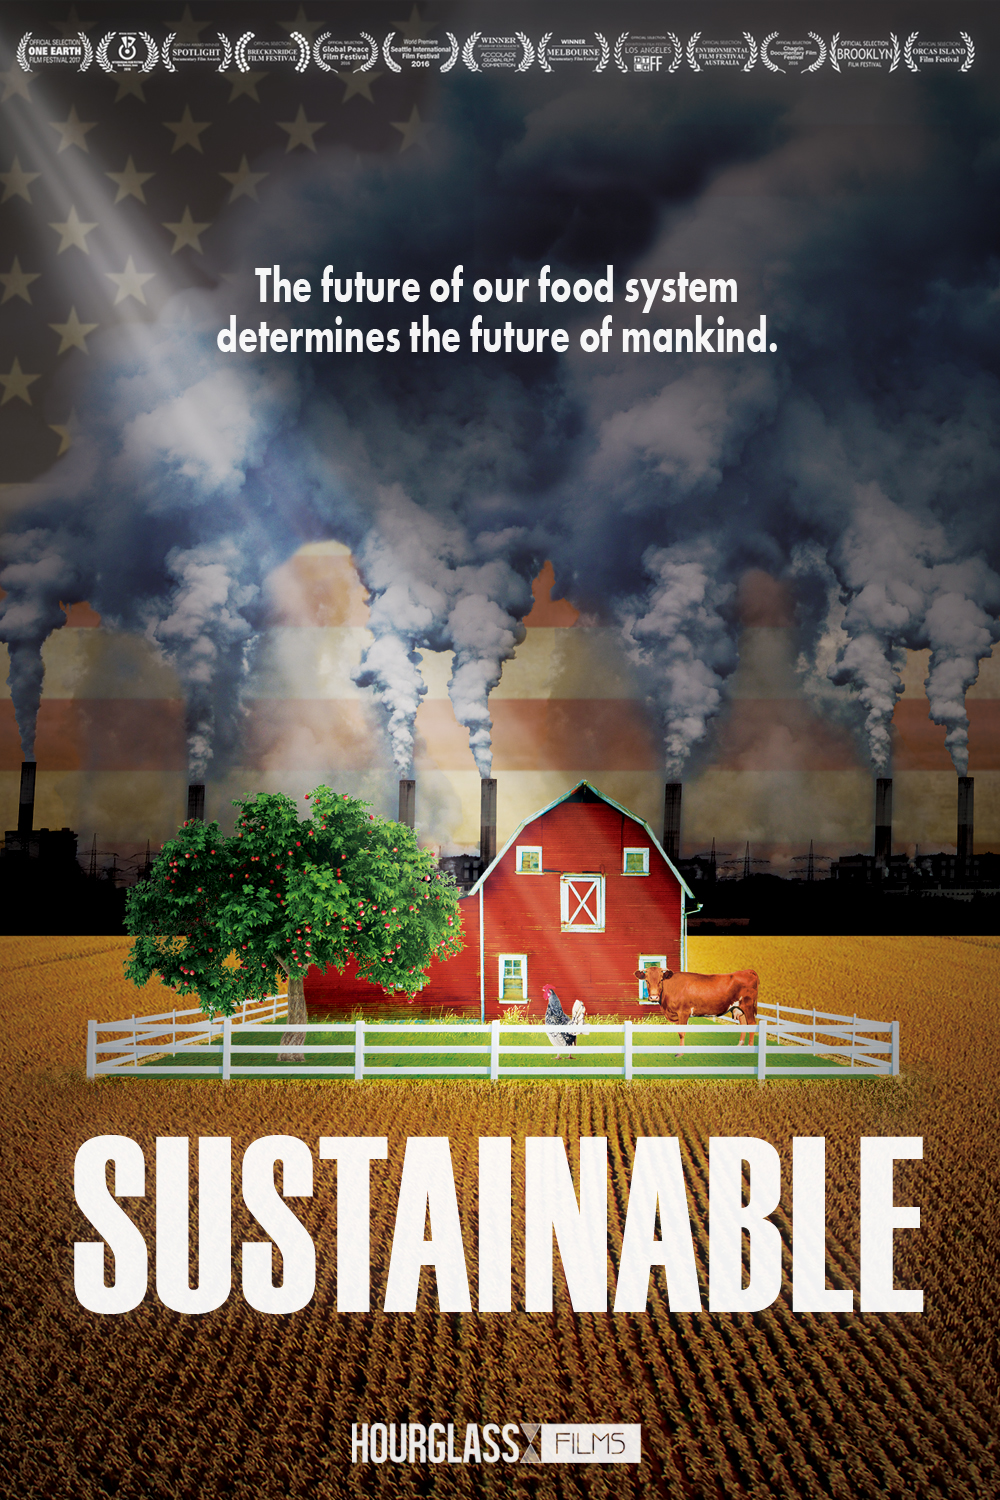 The 2016 documentary film Sustainable lays out the case for organic farming through the eyes of farmers practicing sustainable operations